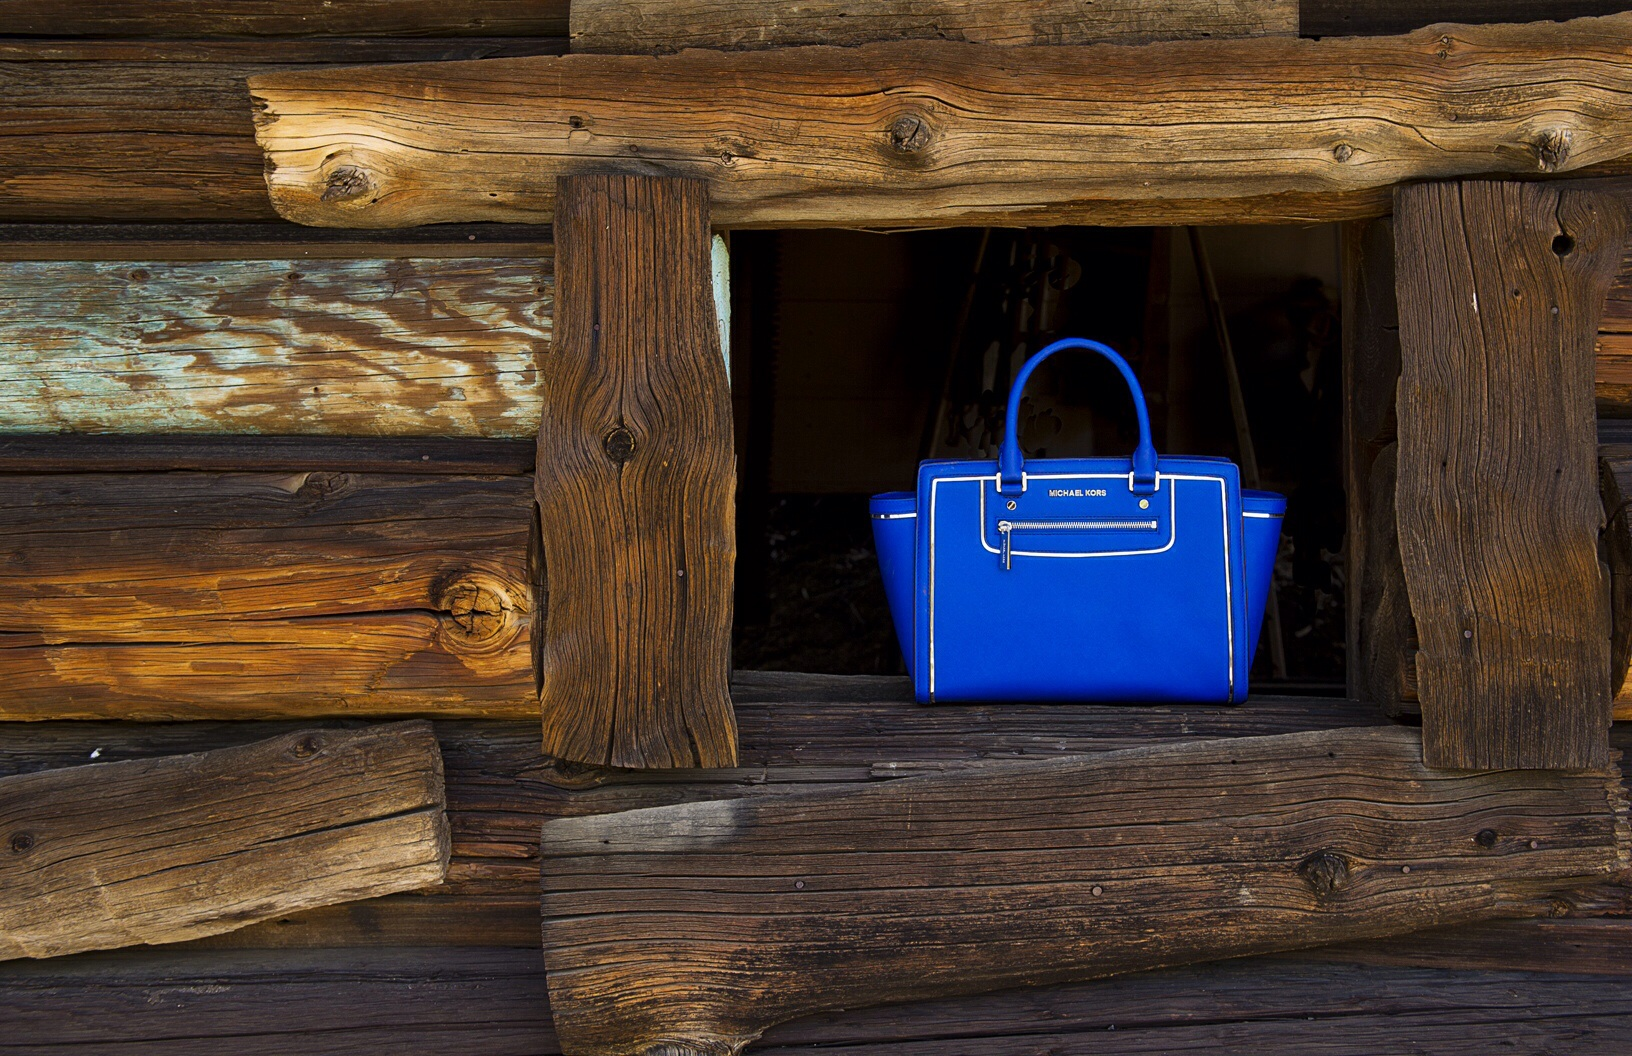 Michael Kors - blue leather handbag - SMILE XXVII Studios